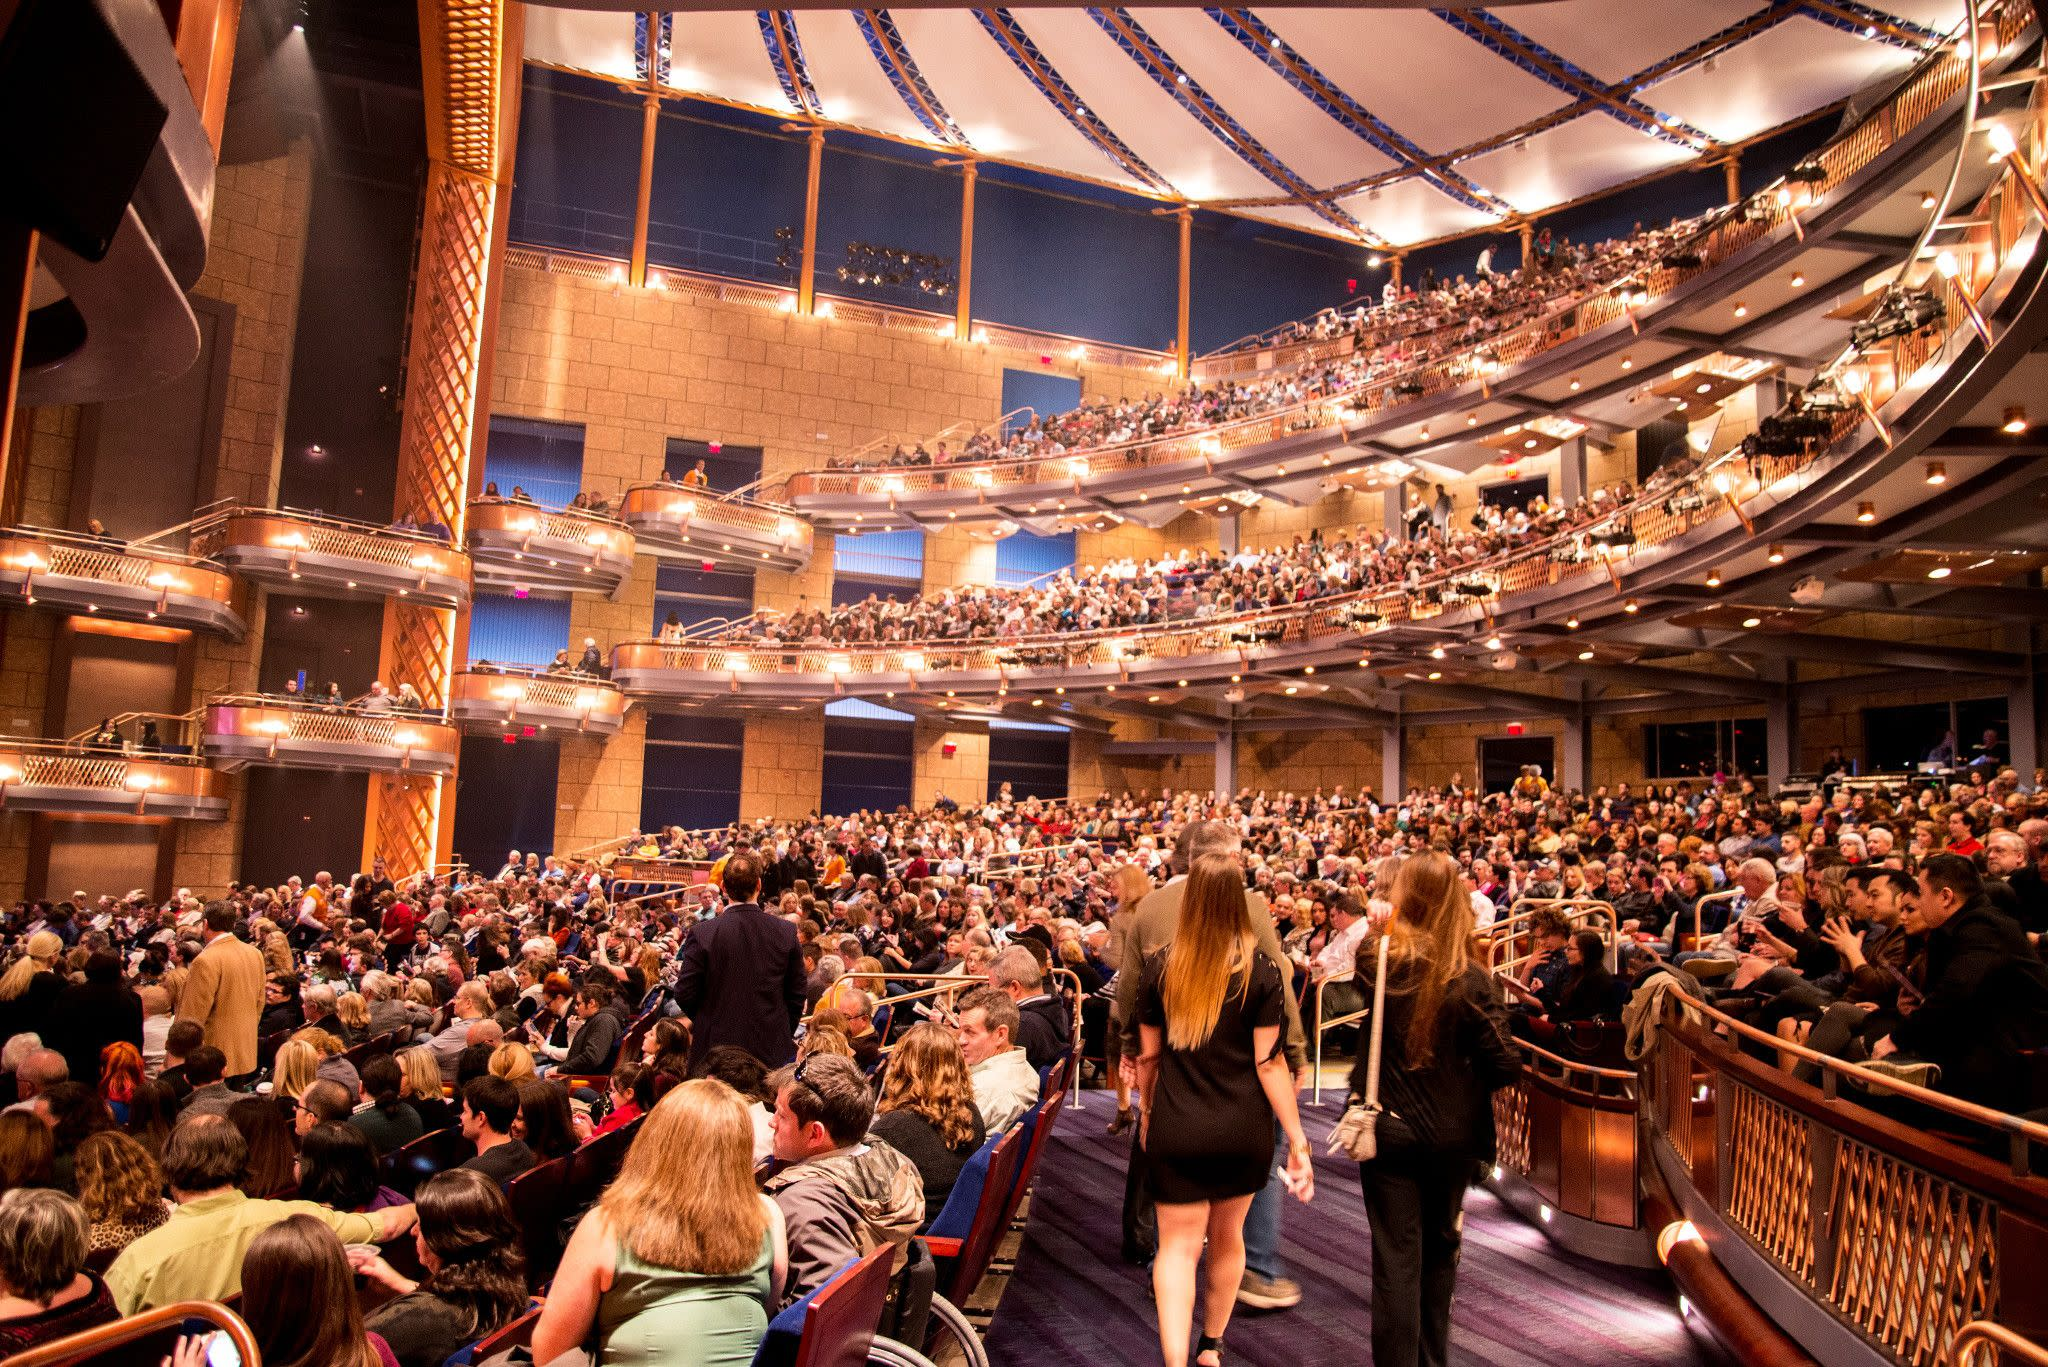 Dr. Phillips Center for the Performing Arts in Orlando